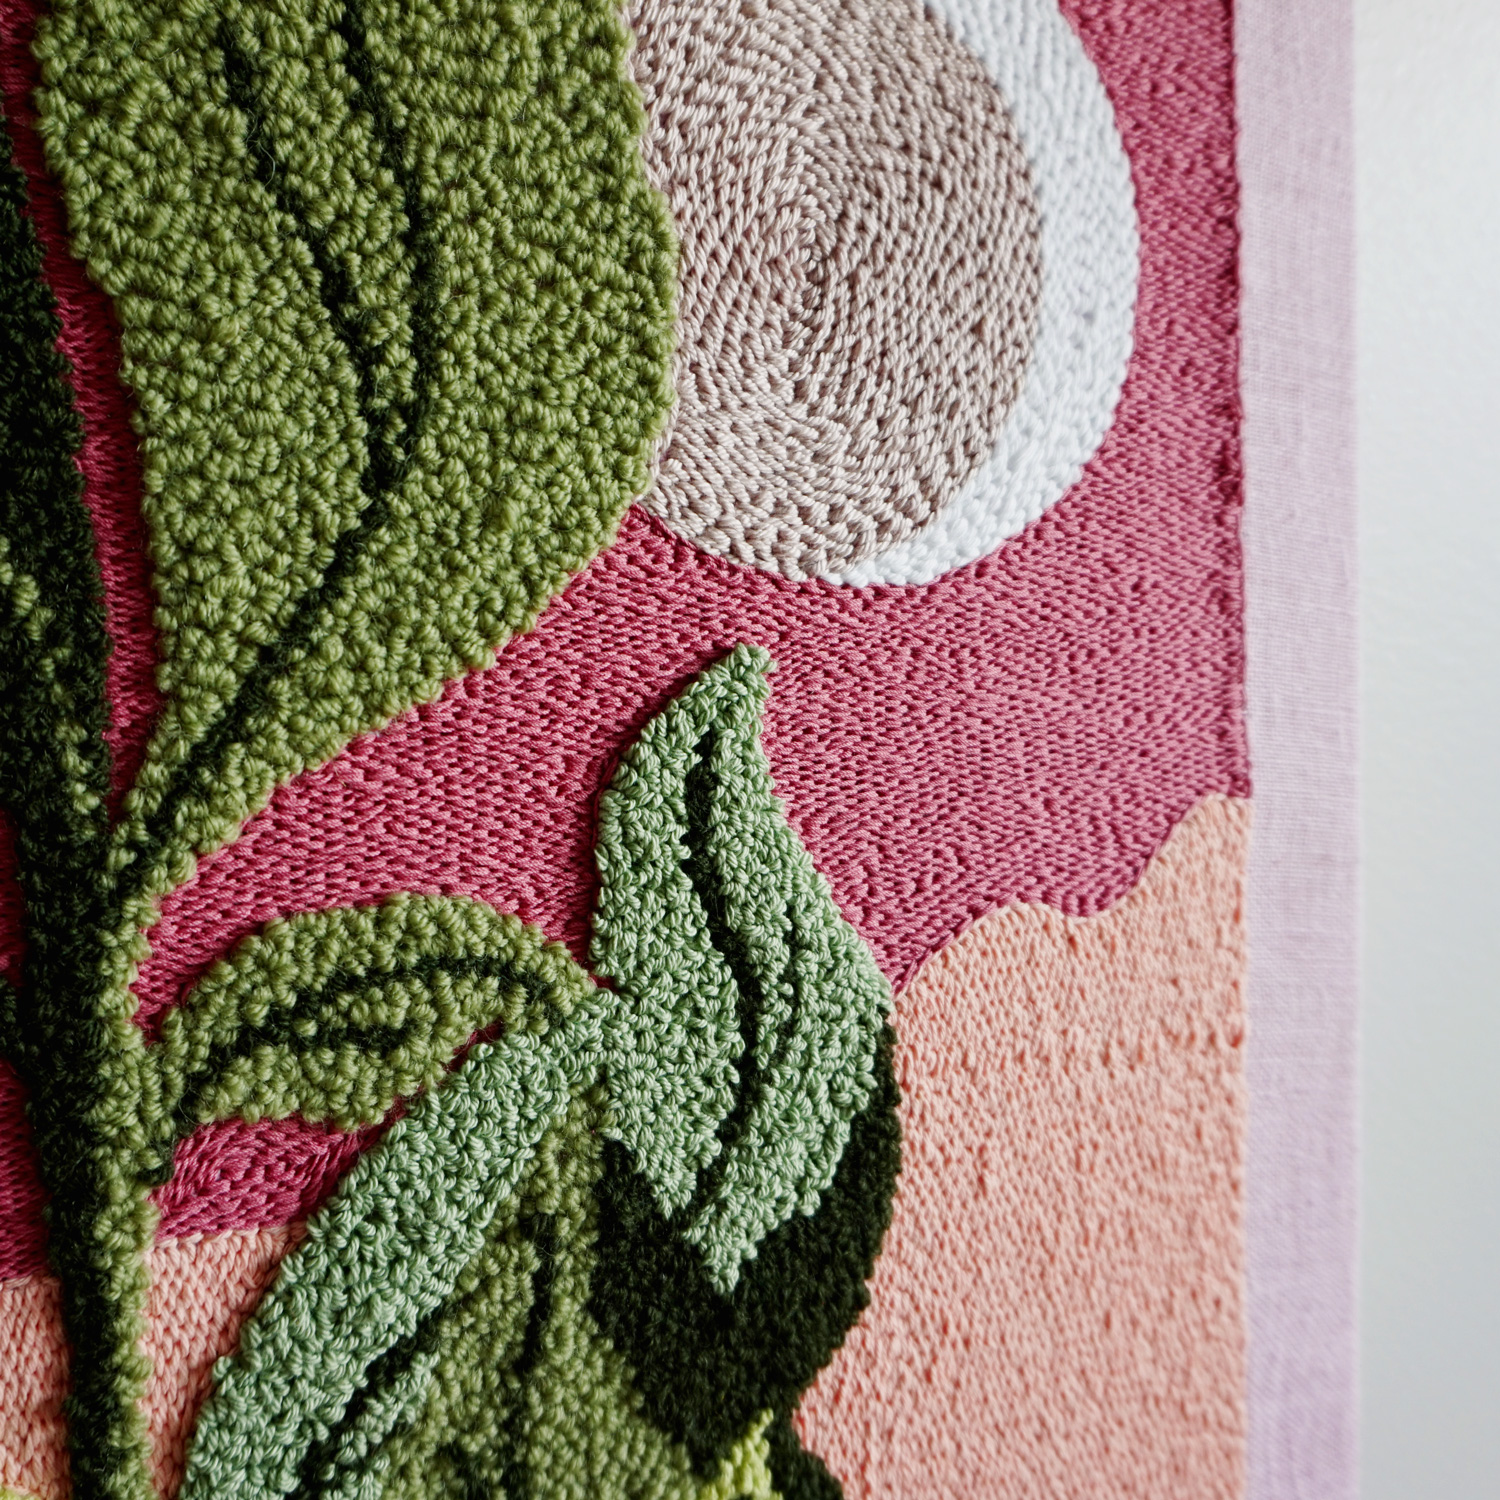 An extra large soft botanical punch needle art piece, featuring a luscious green leafy plant in front of a desert scene.